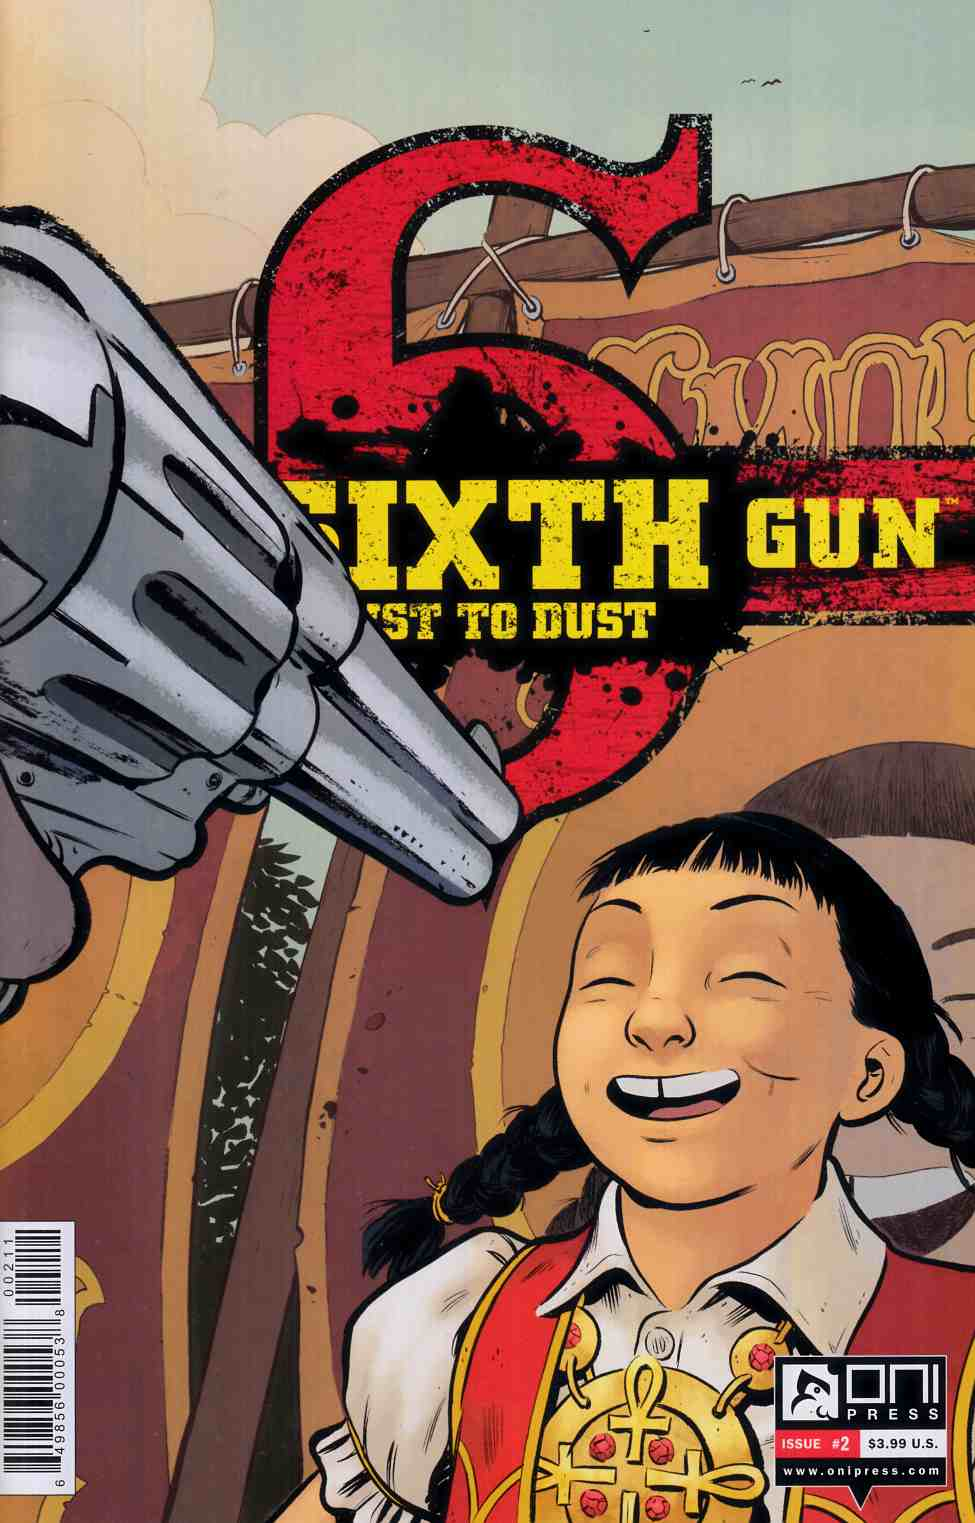 Sixth Gun Dust To Dust #2 [Oni Press Comic]